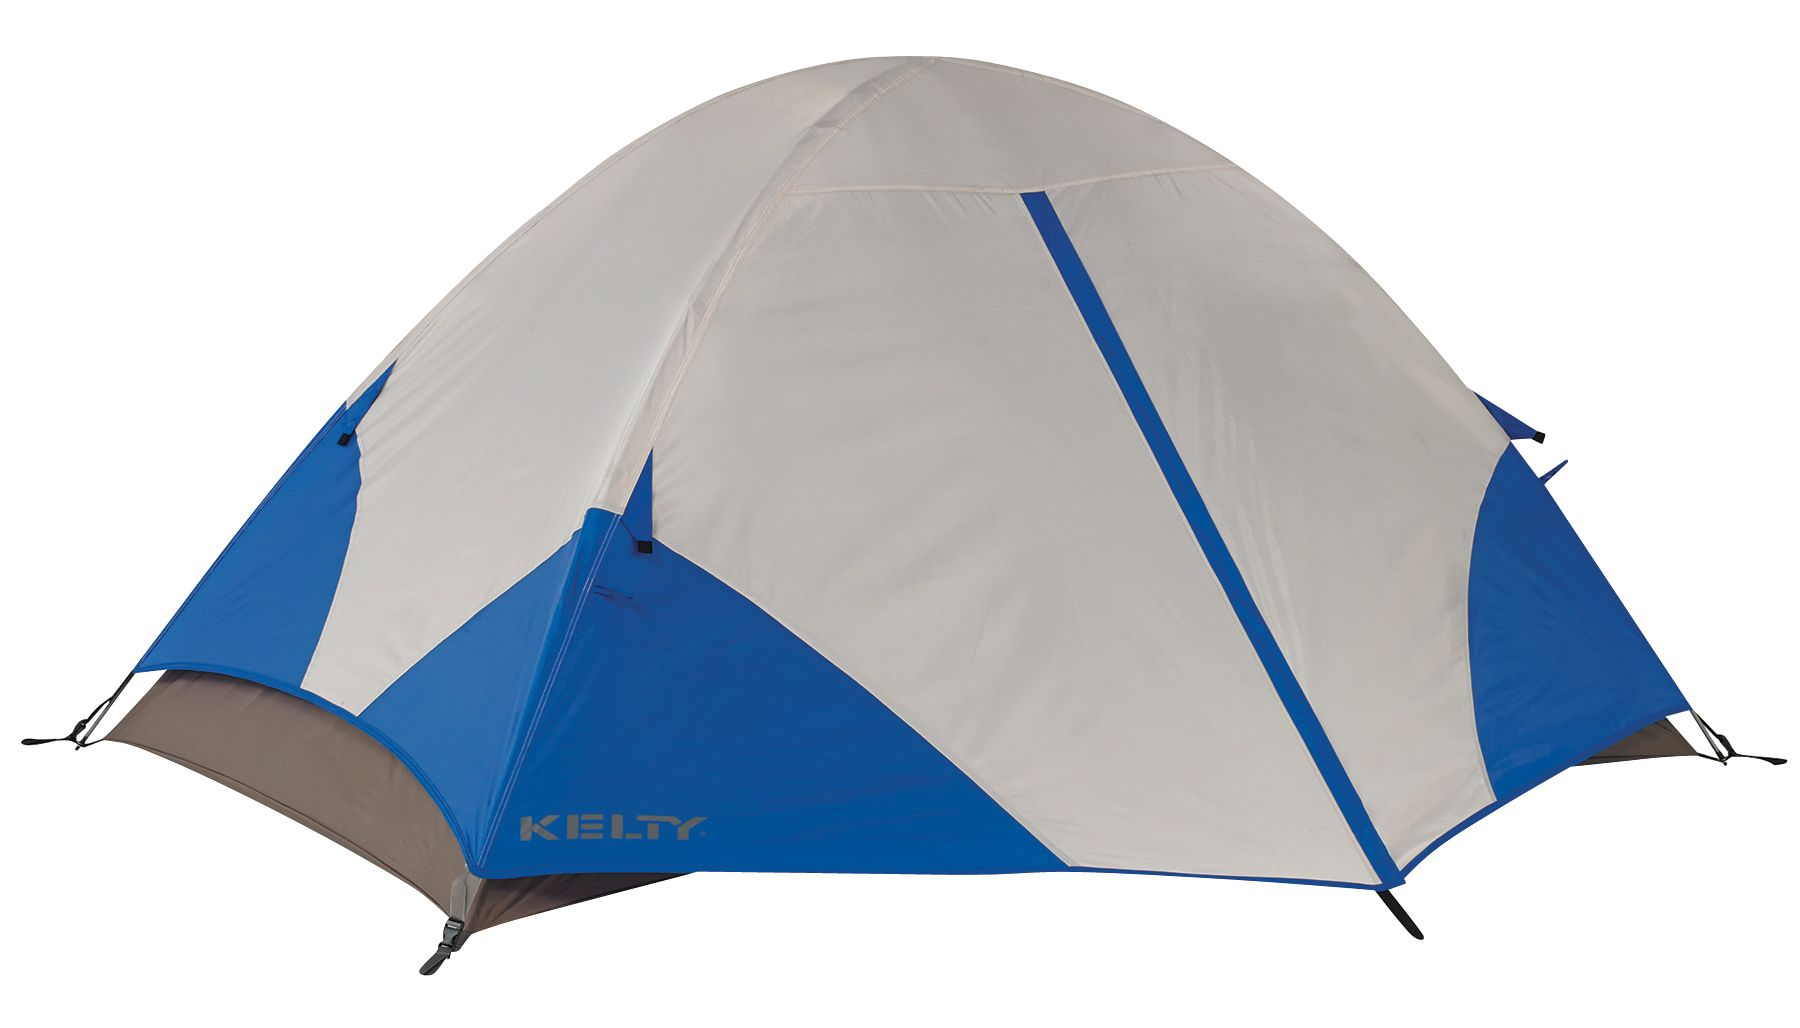 Product Image · Kelty Tempest 2 Person Tent  sc 1 st  DICKu0027S Sporting Goods : black diamond 3 person tent - memphite.com